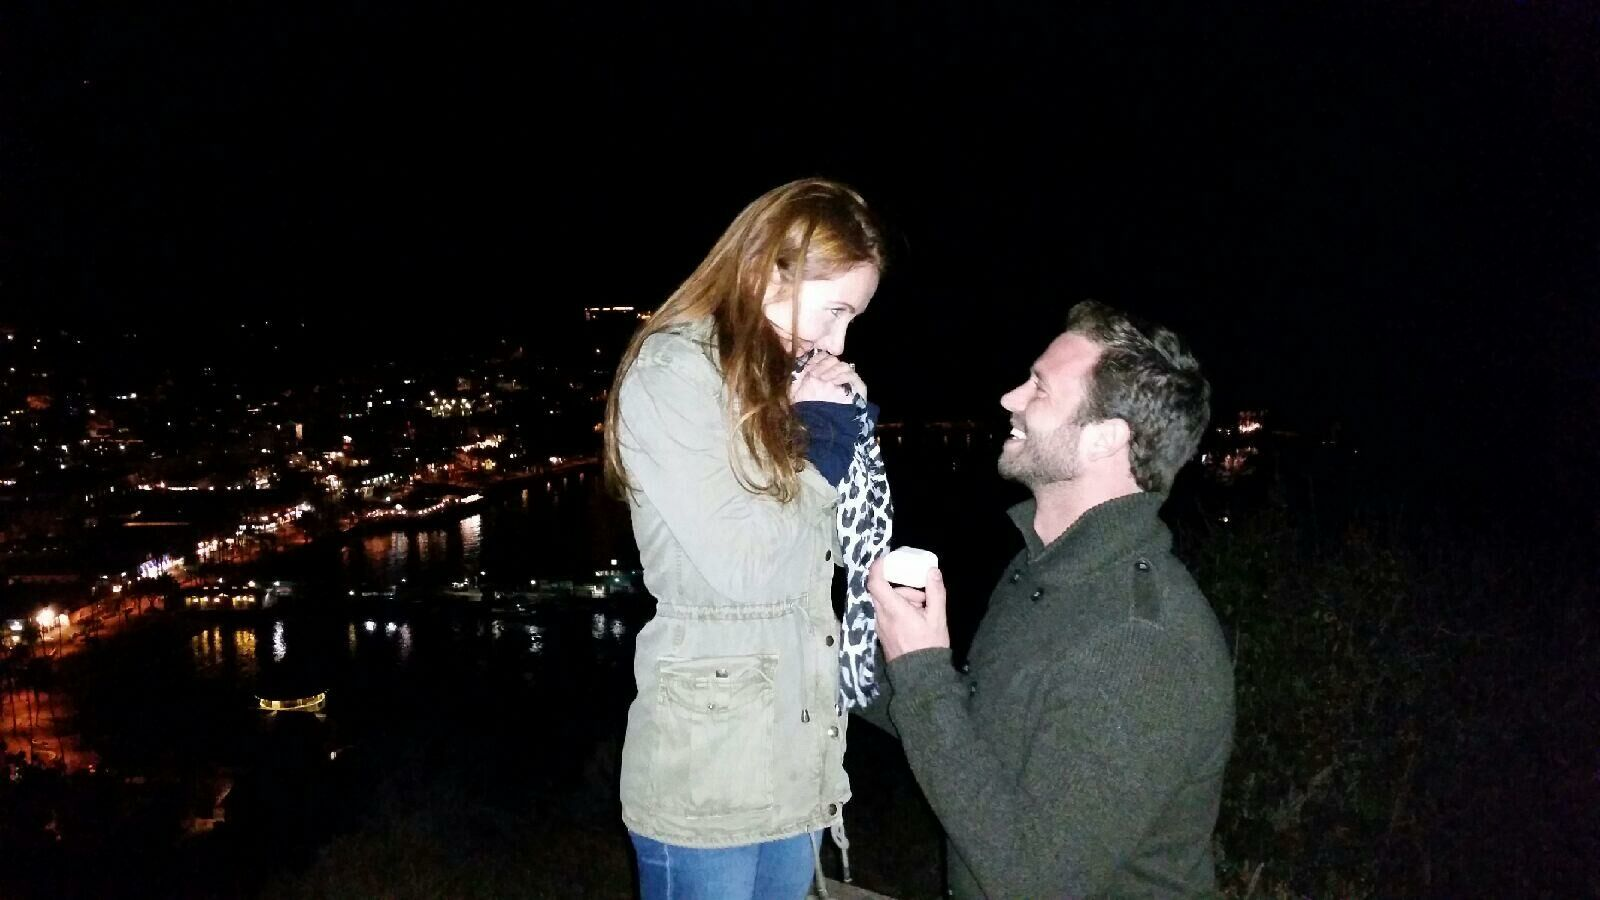 Ben proposing his wife Miranda Frigon on the top of a mountain at Catalina Island